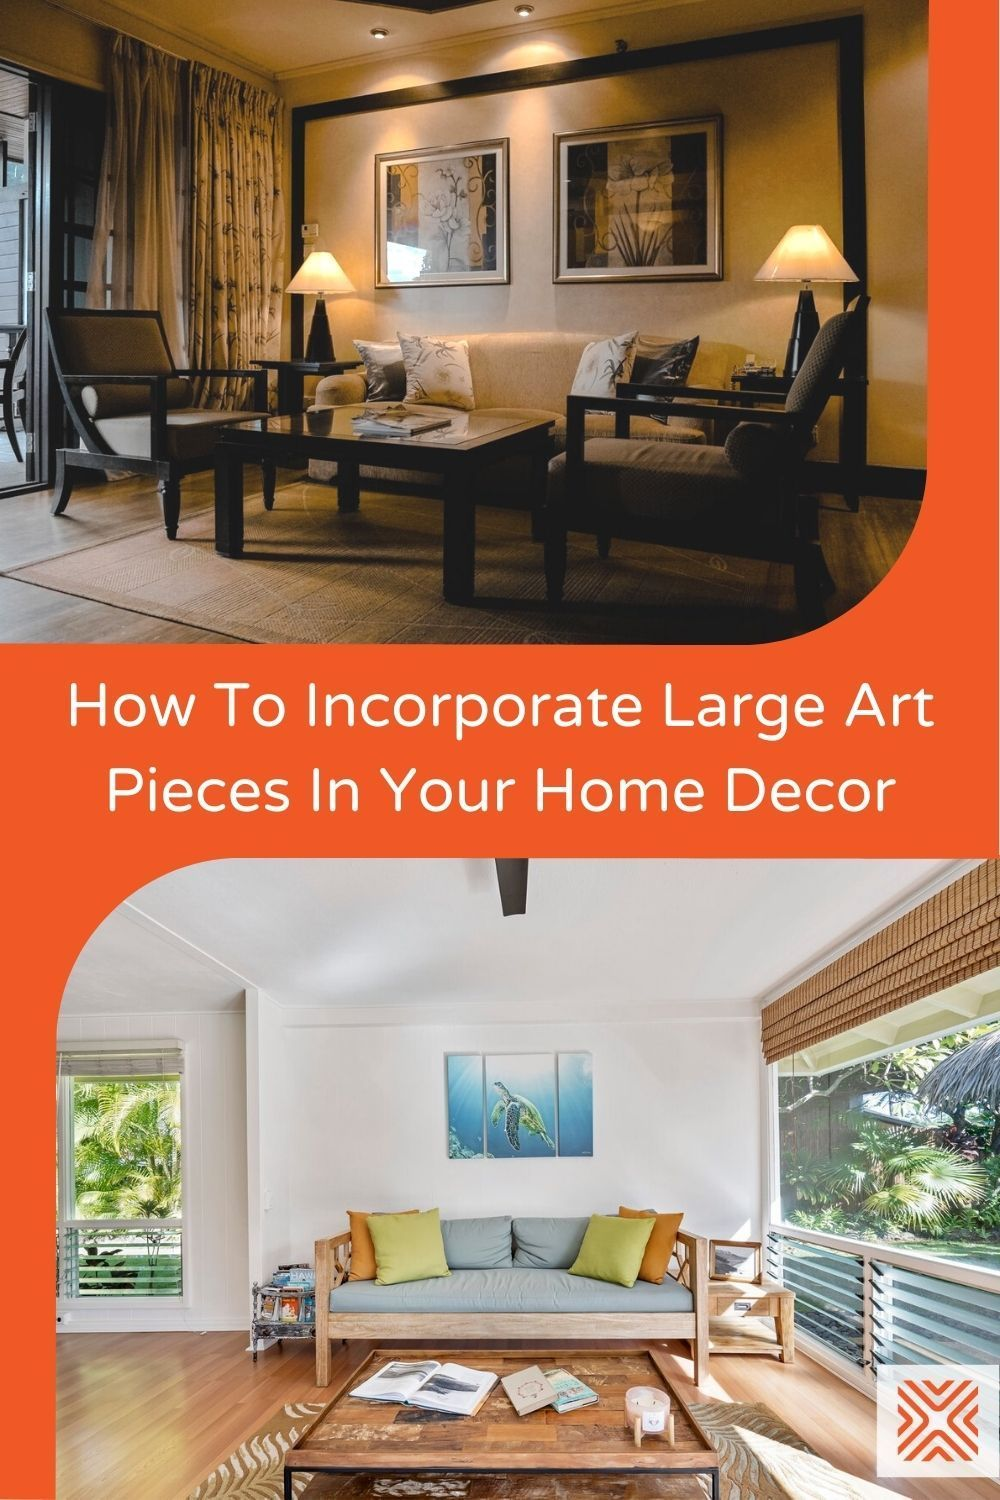 If you love a clean, minimalist style but want to add pops of color to lift a neutral interior, a large scale art piece is just what your interior needs. Learn how to add art to your home decor here.